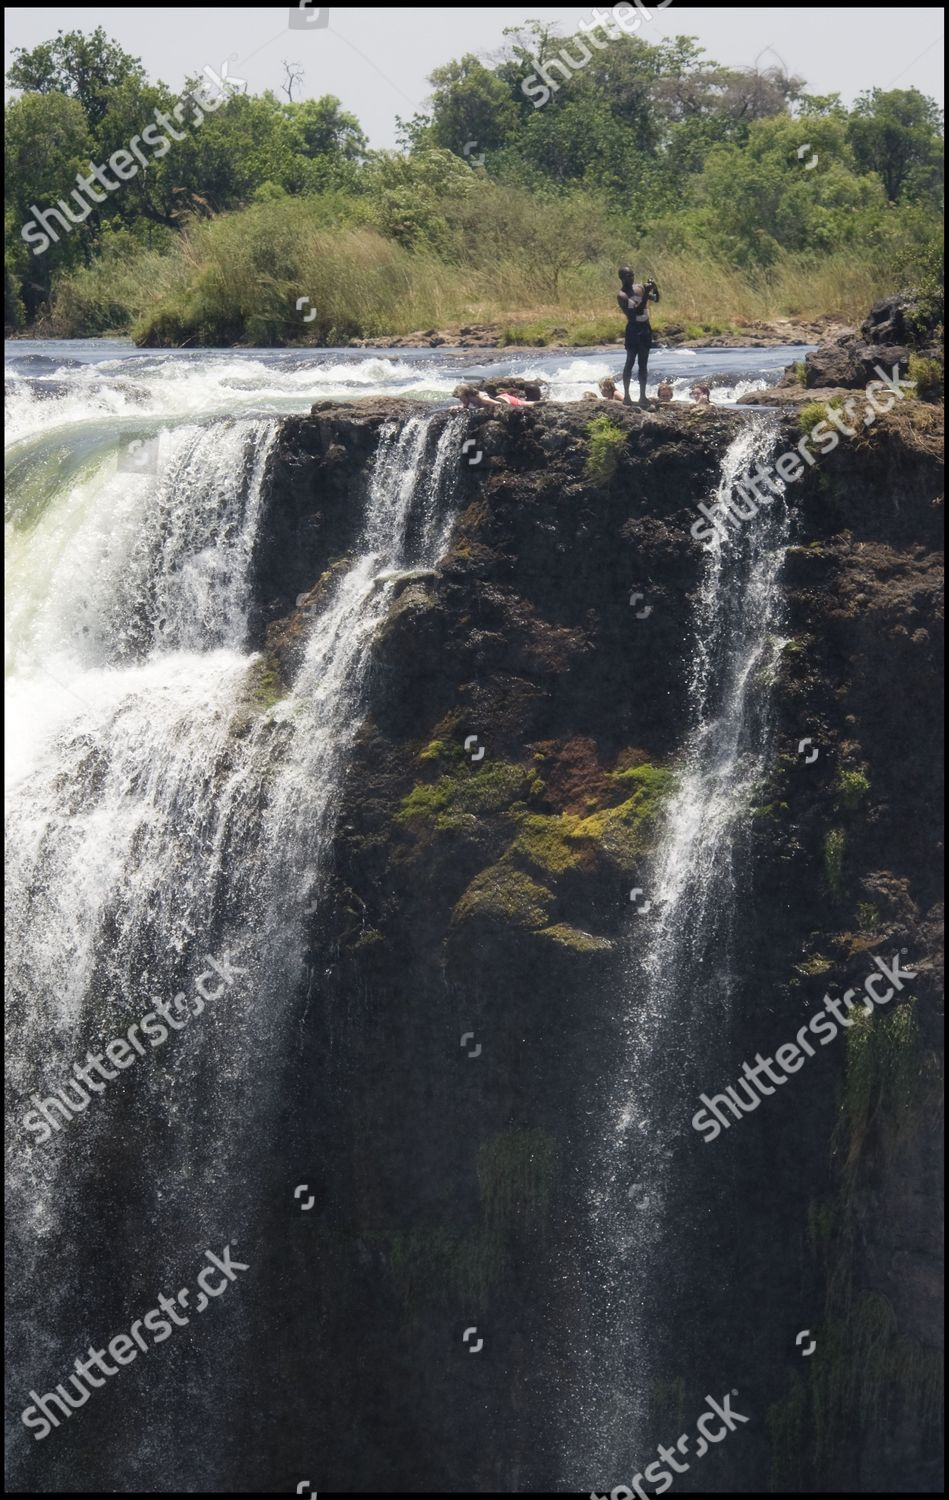 Victoria Falls Zambian Tour Guide Entertains His Editorial Stock